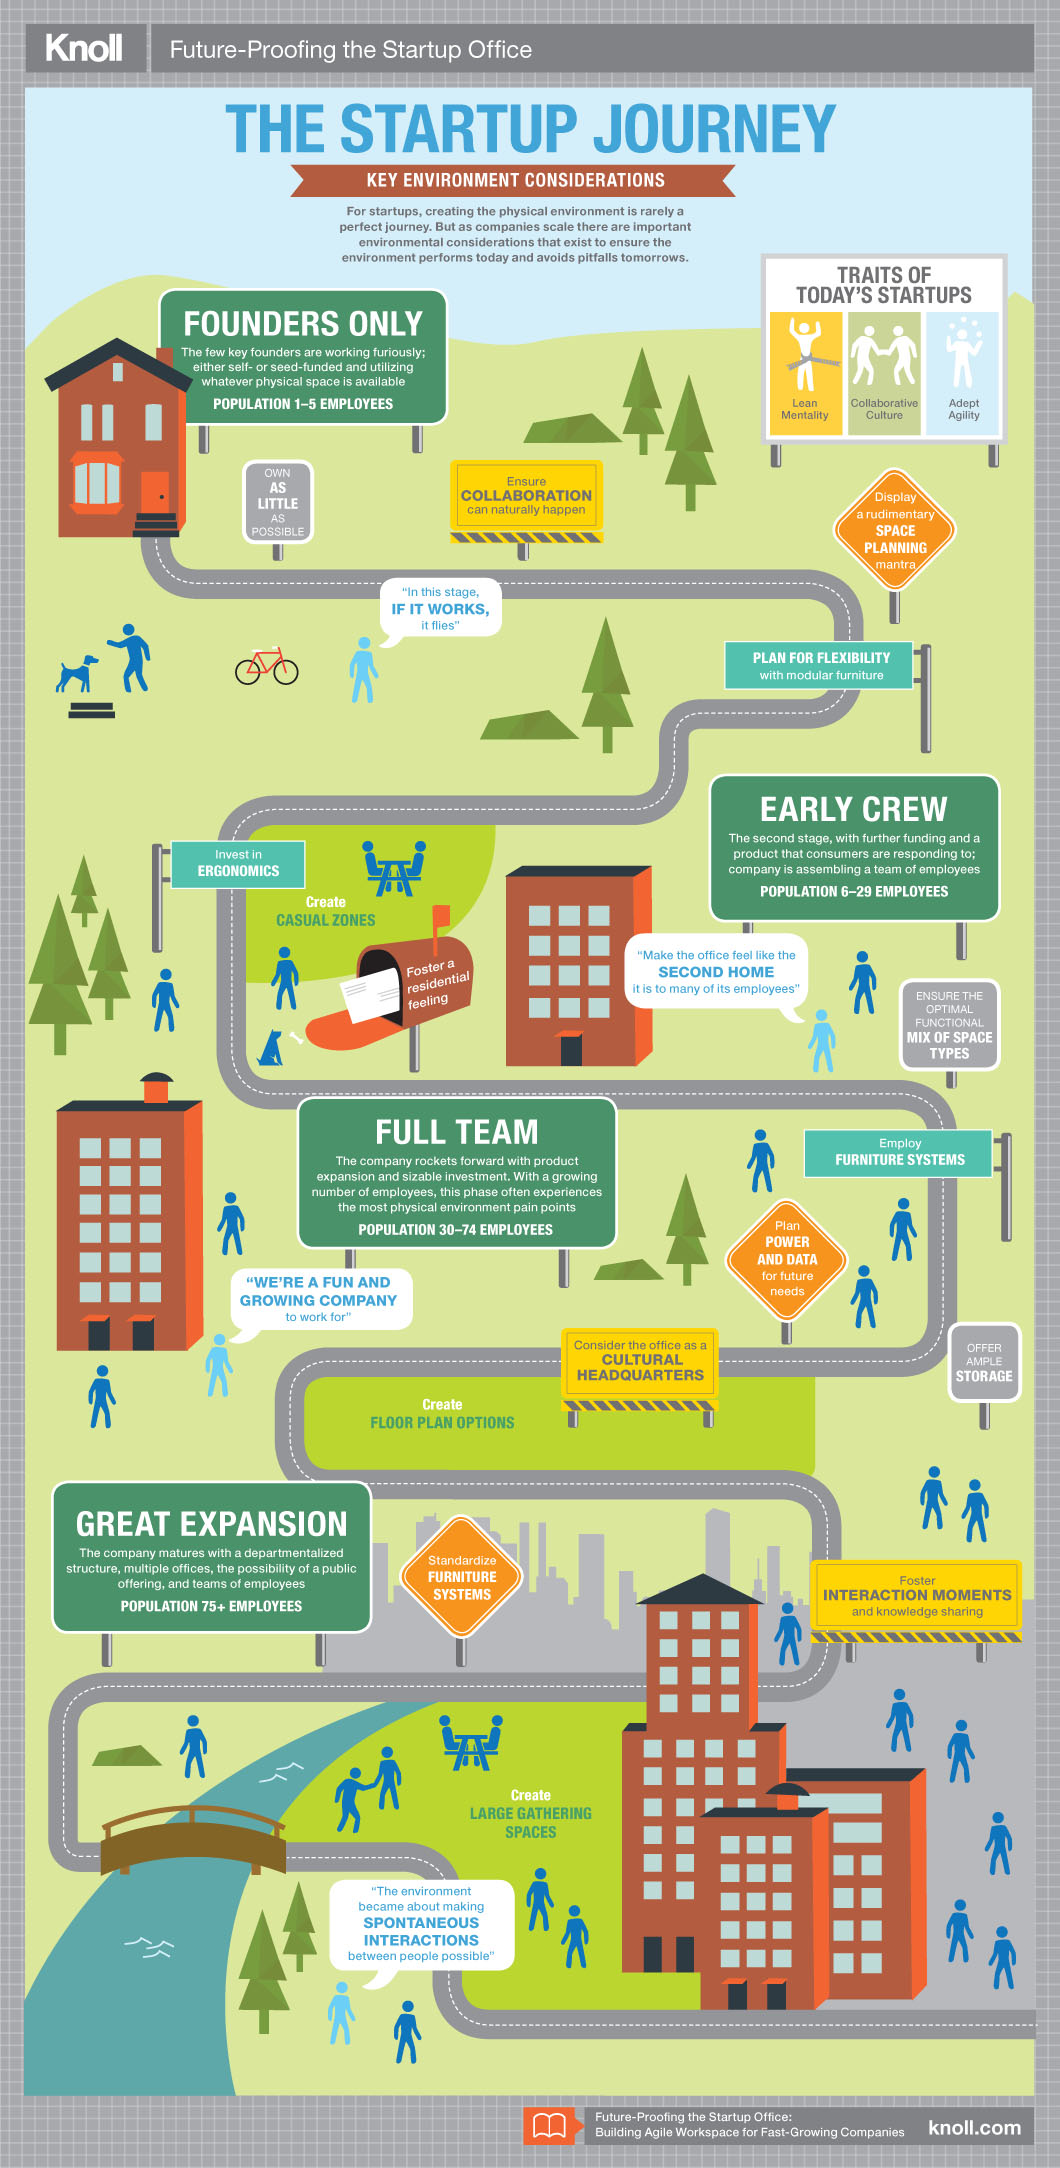 Future-Proofing the Startup Office: The Startup Journey